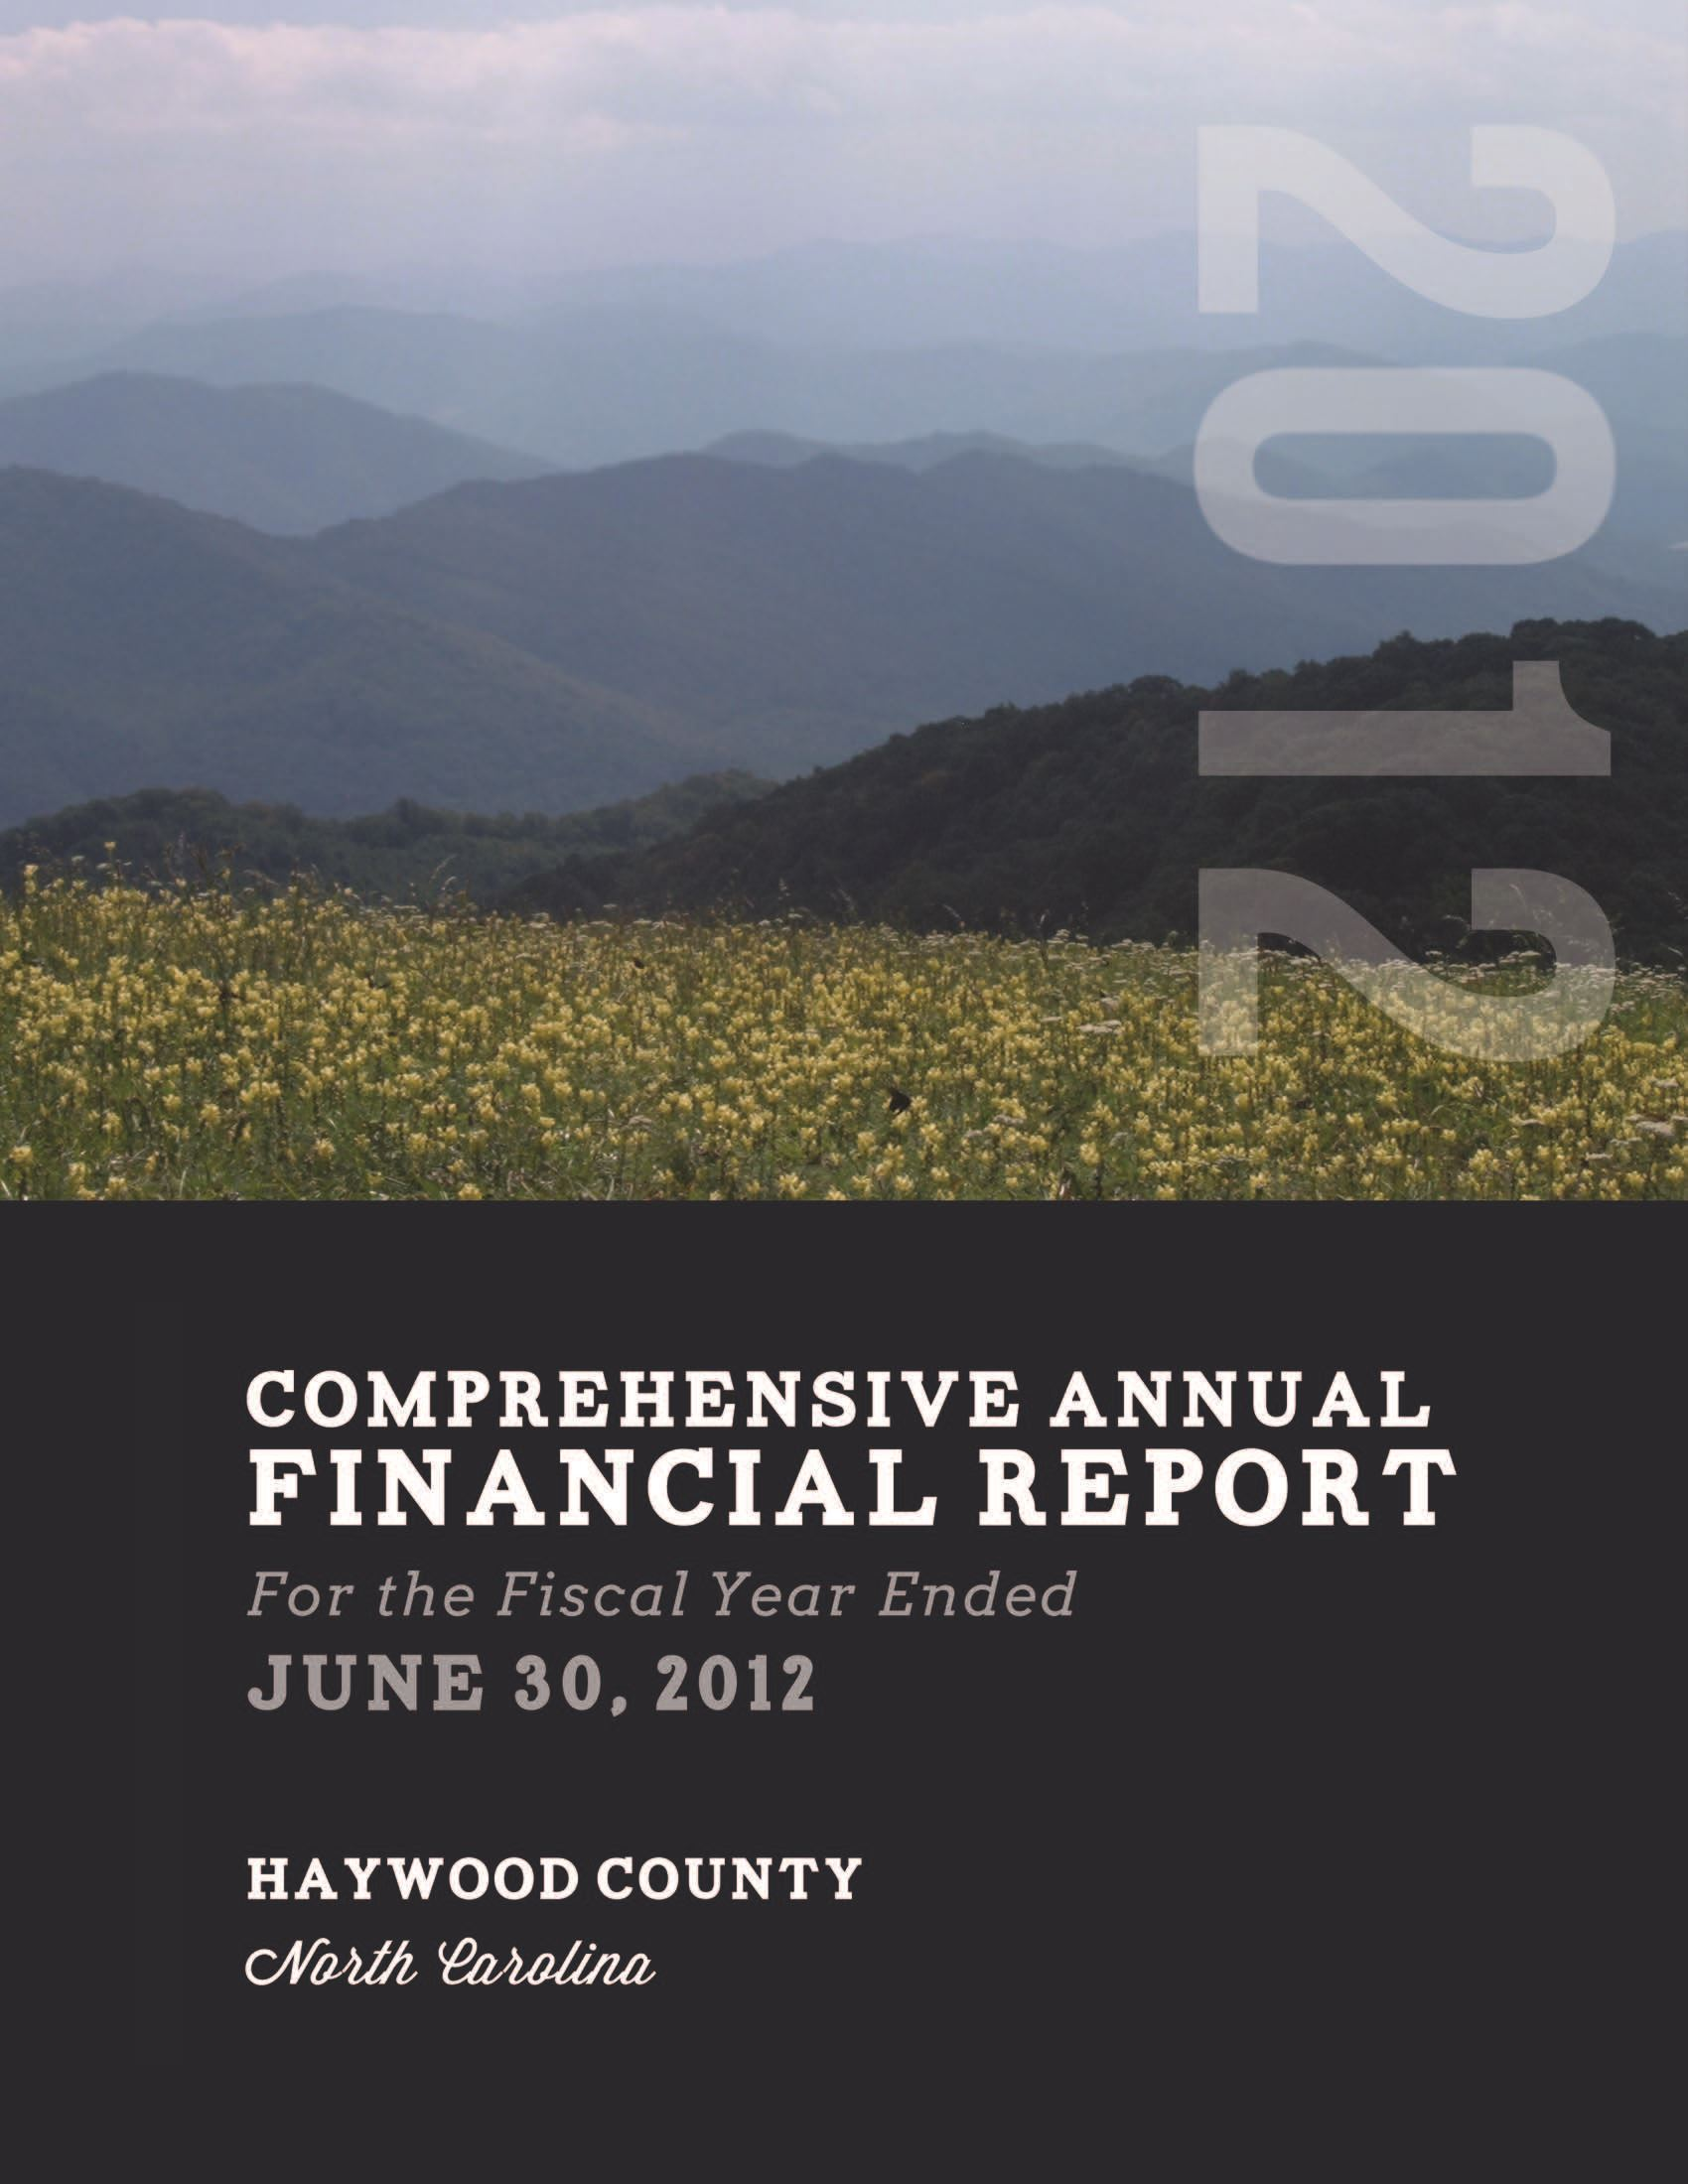 Comprehensive Annual Financial Report 2012 Cover Opens in new window